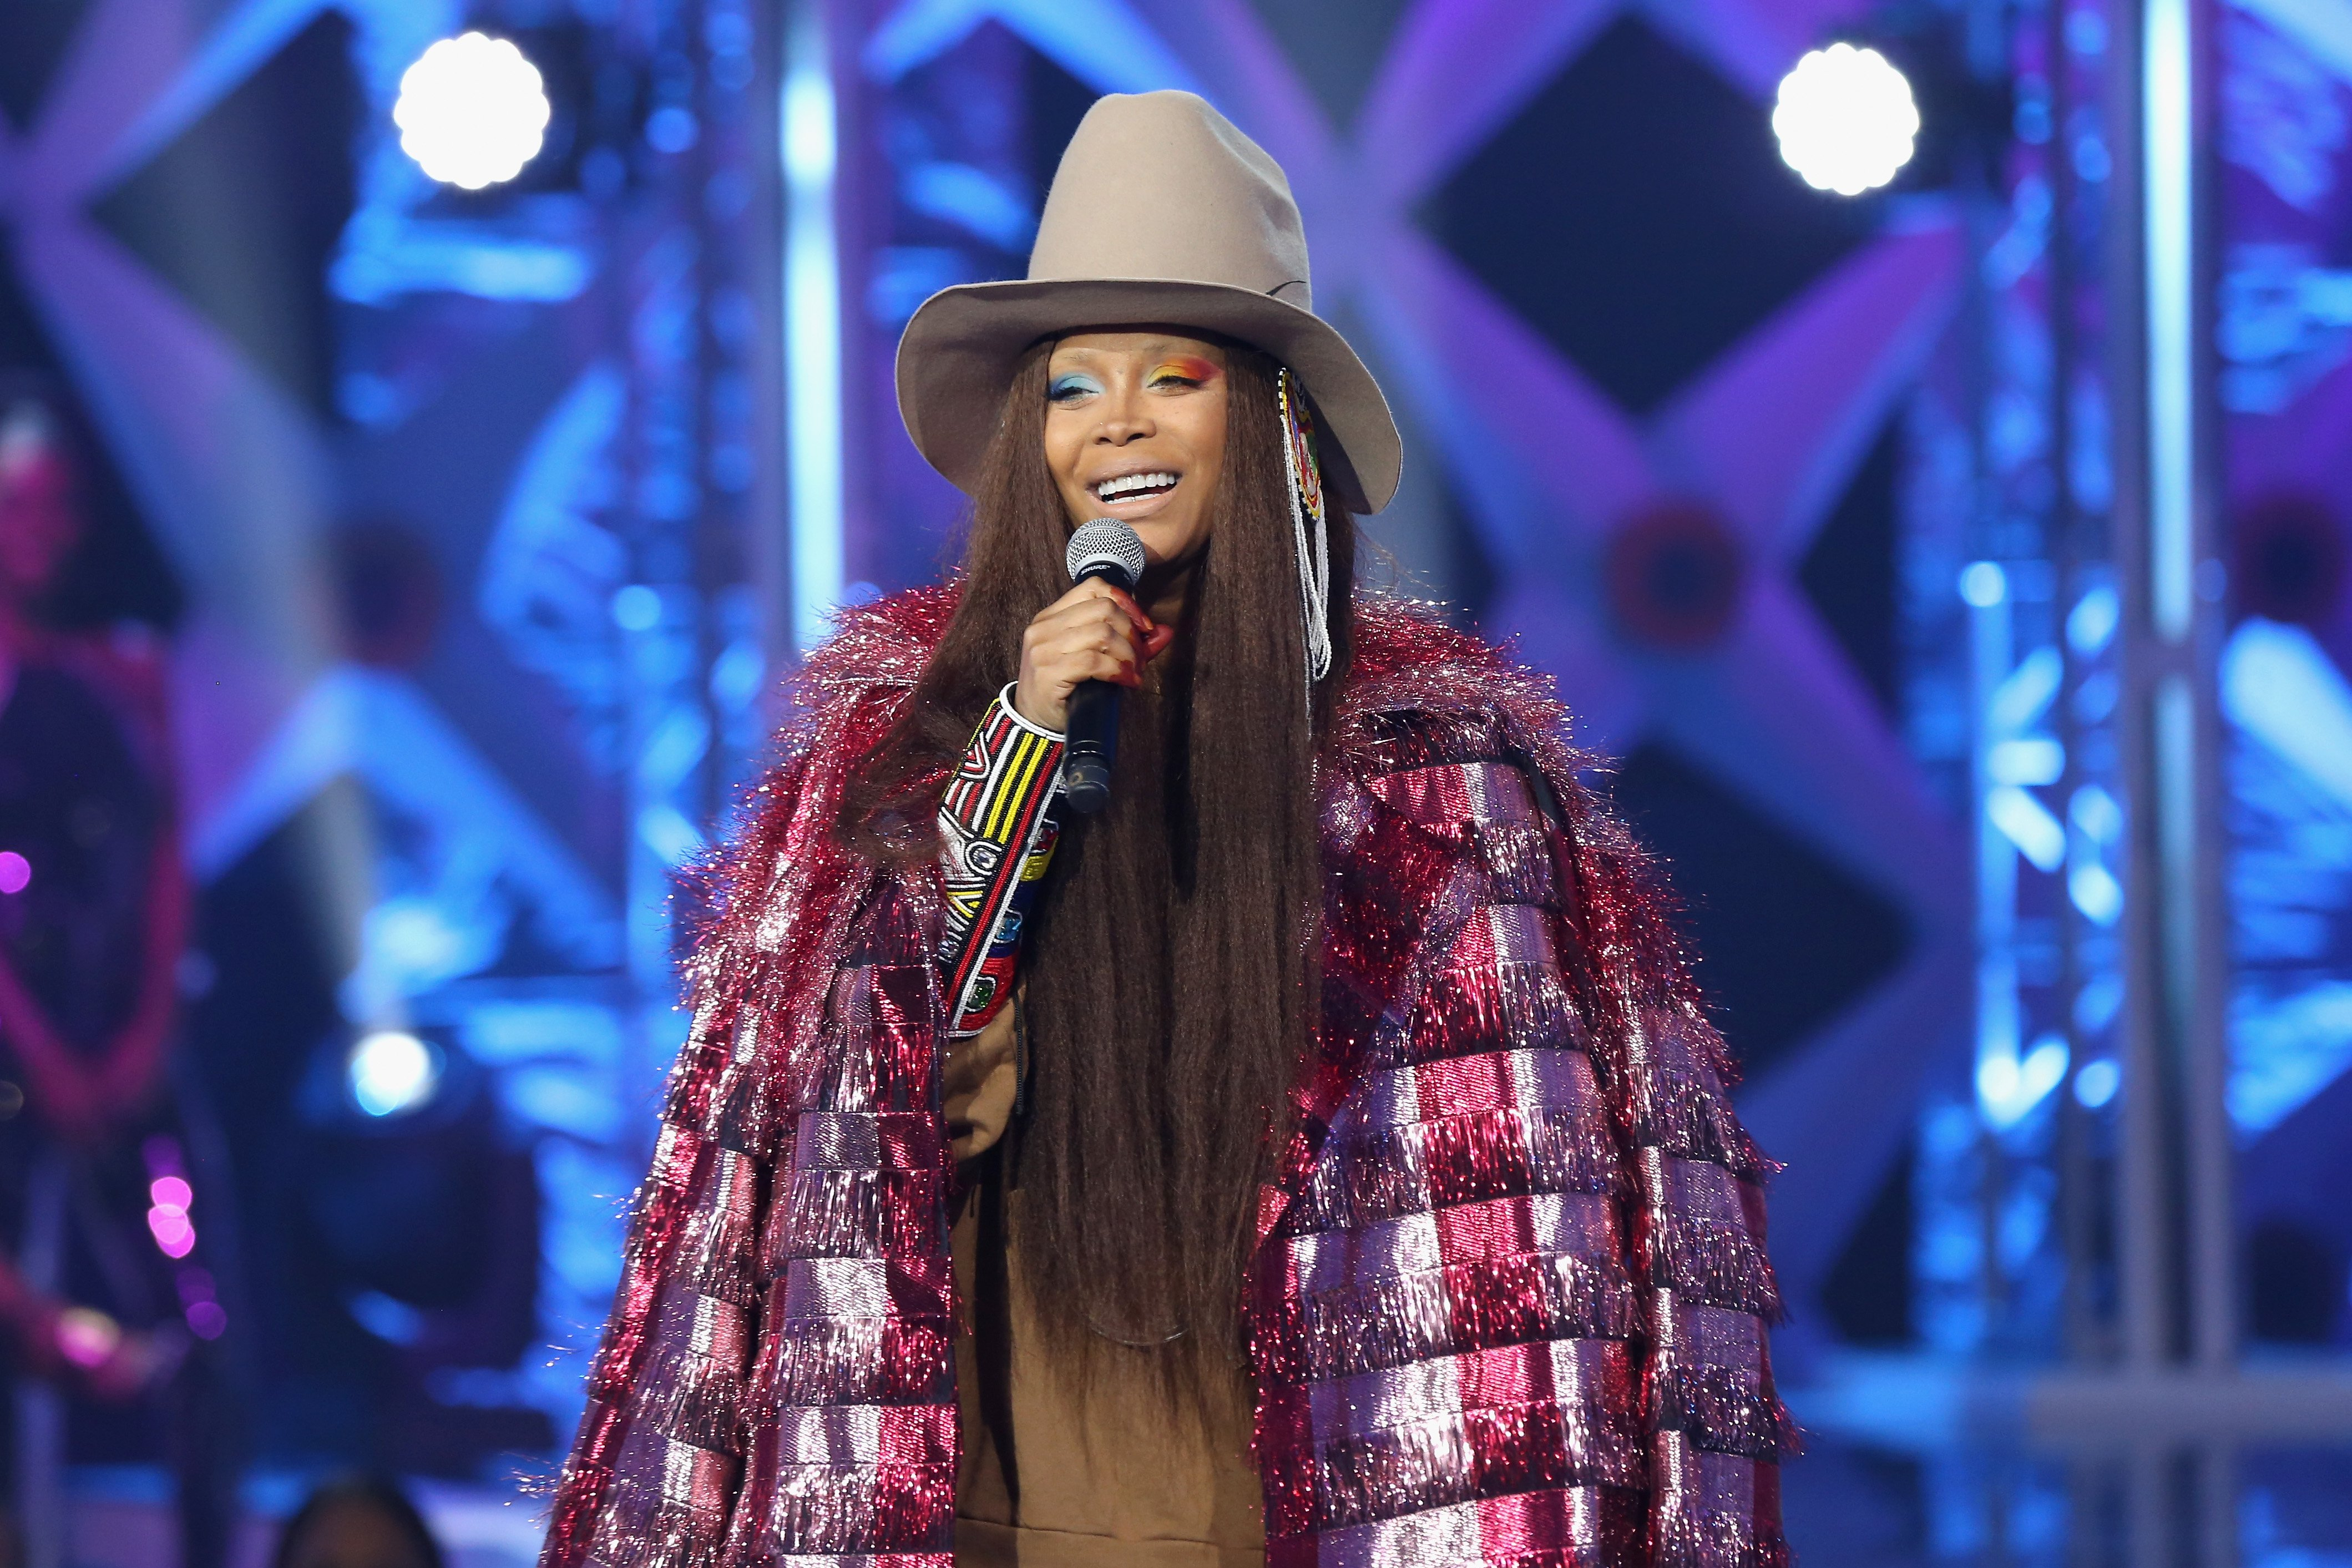 Erykah Badu at BET's Social Awards 2018 on February 11, 2018 in Atlanta, Georgia | Source: Getty Images